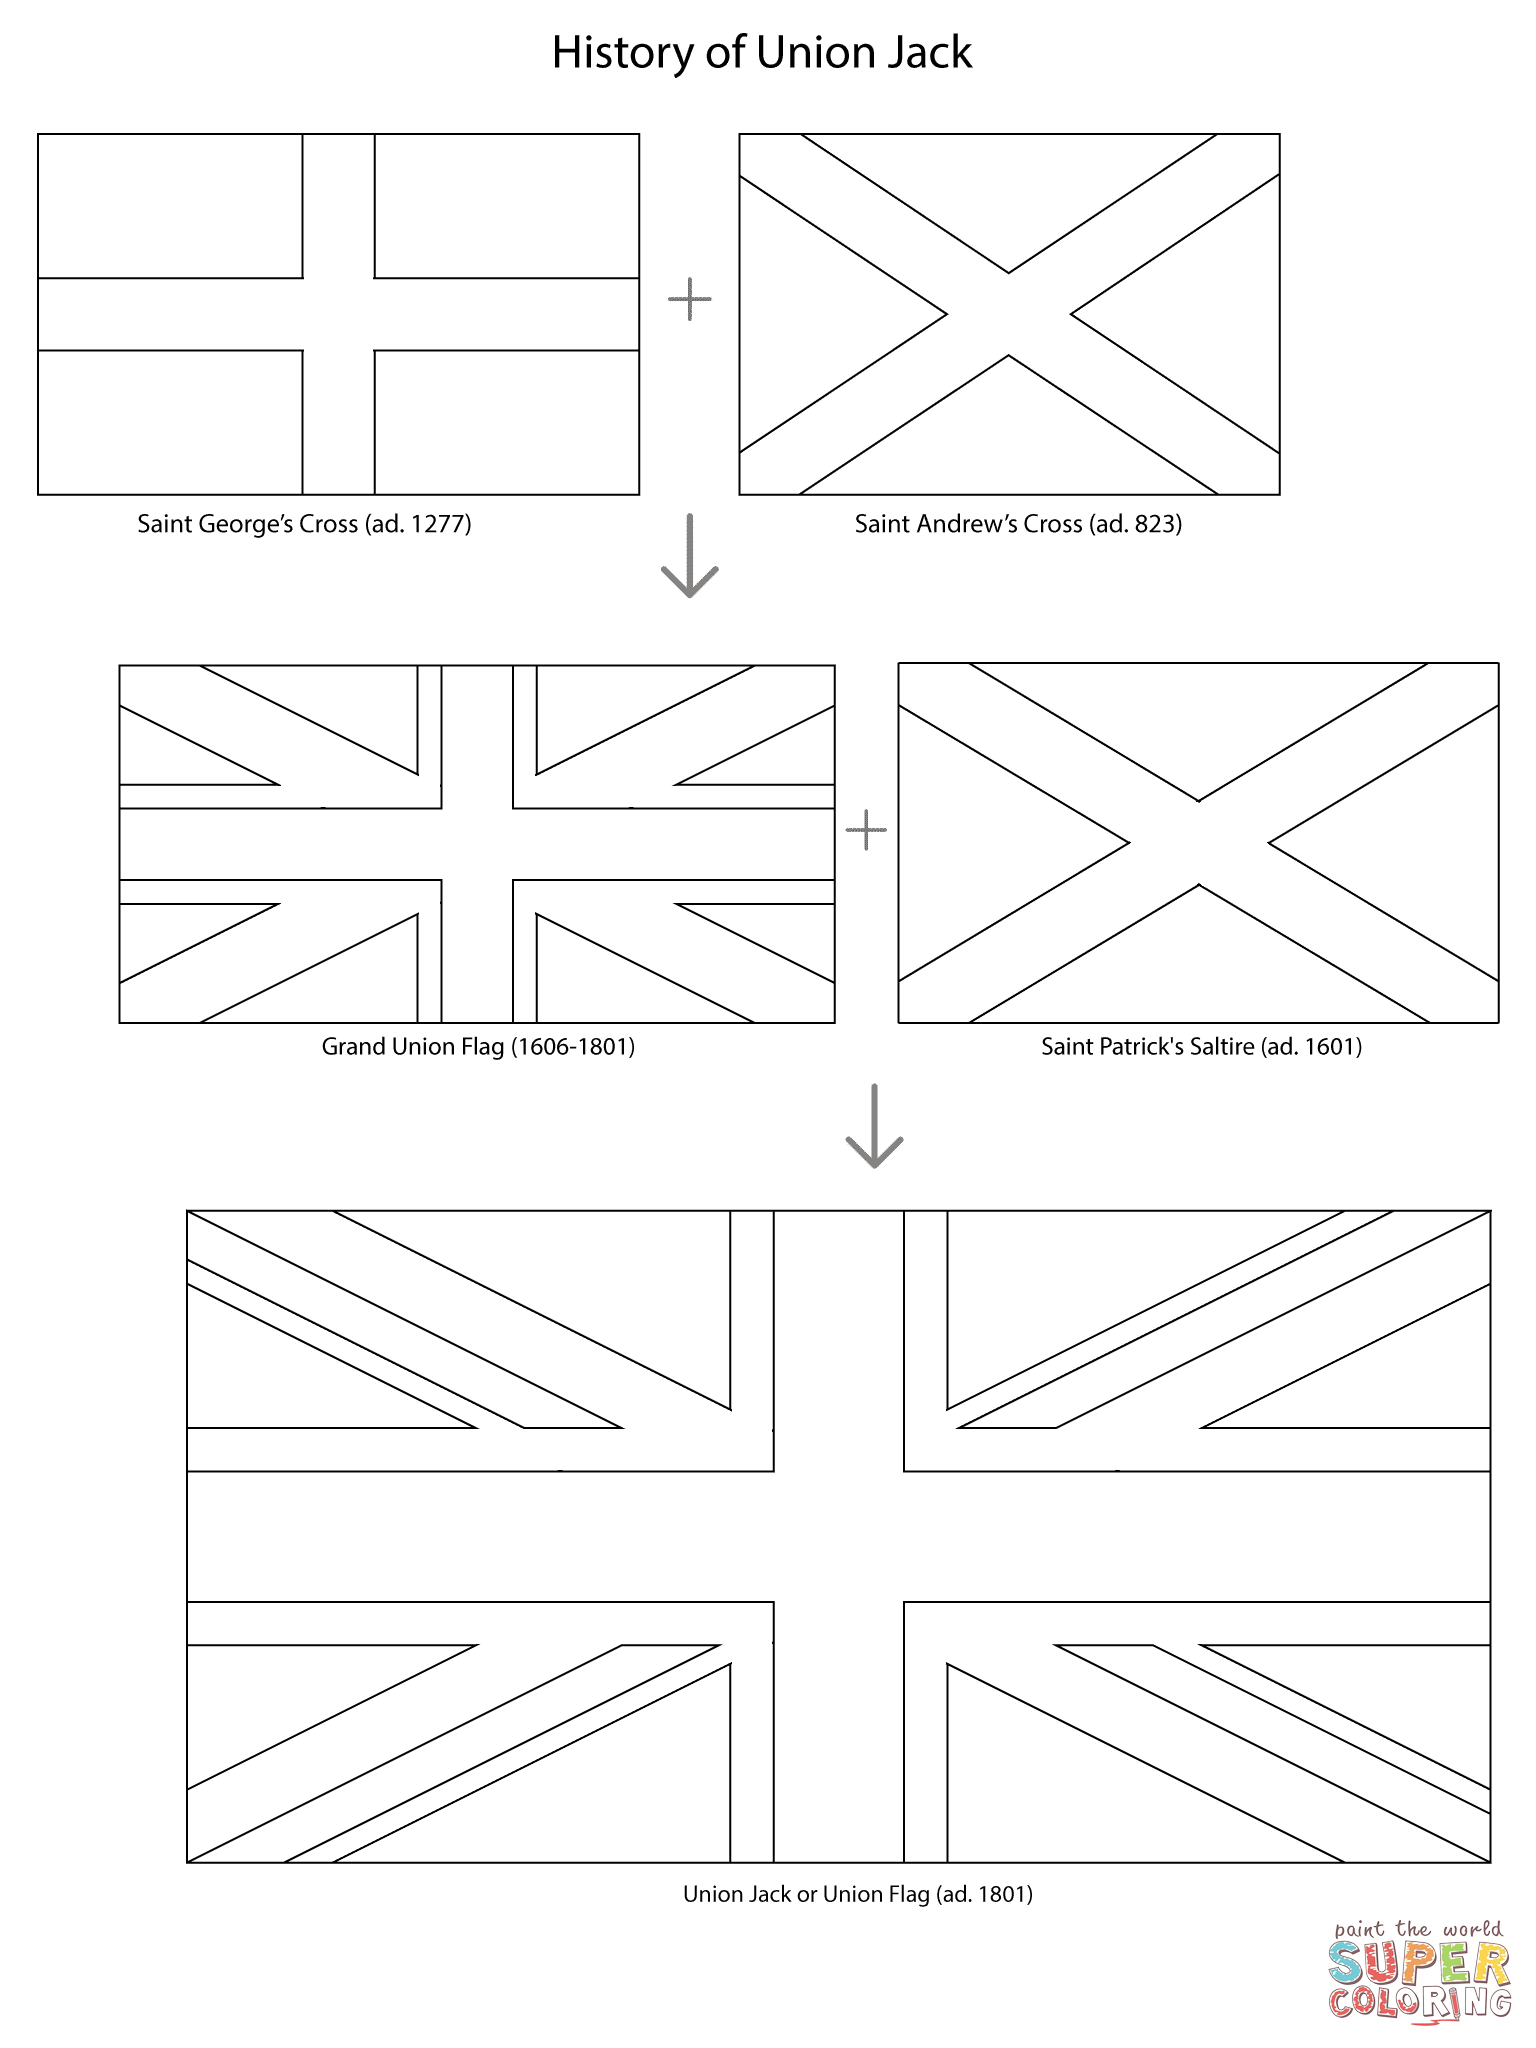 Union Jack History Coloring Page From United Kingdom